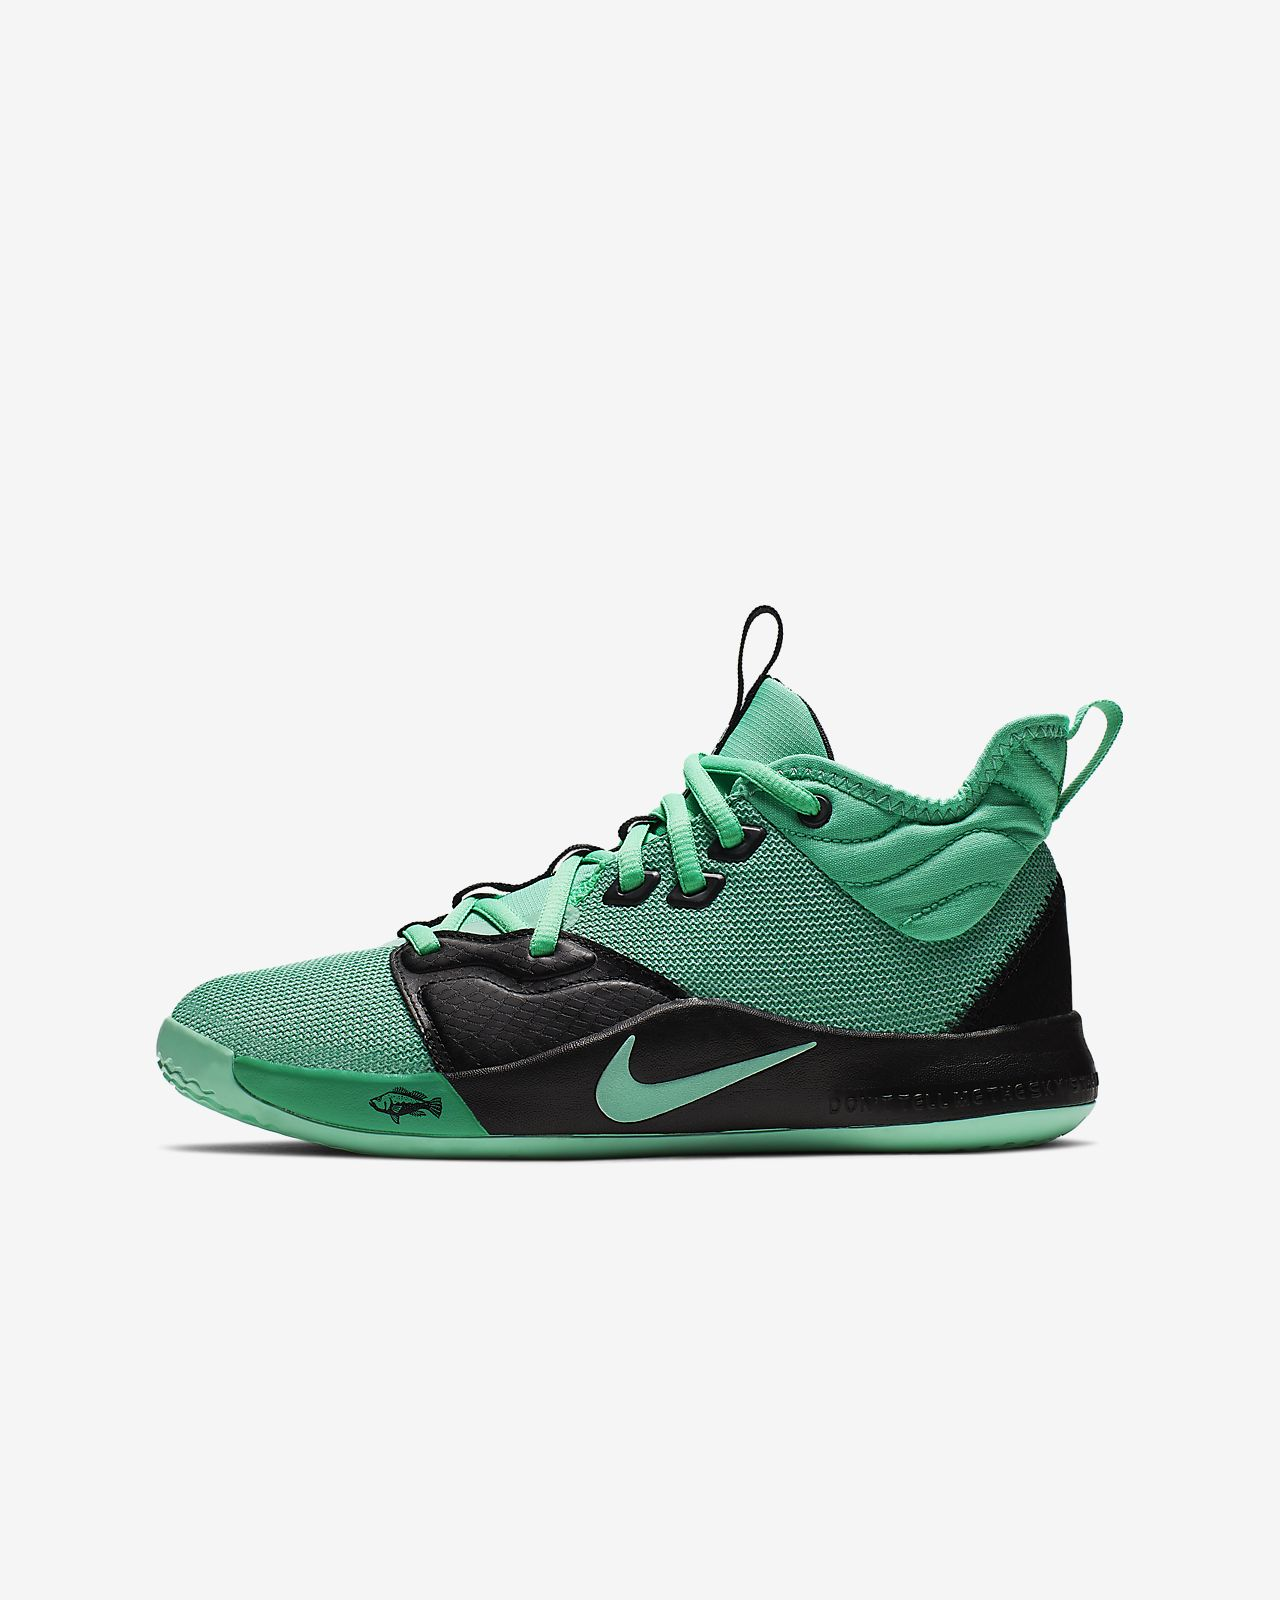 PG 3 Older Kids' Basketball Shoe